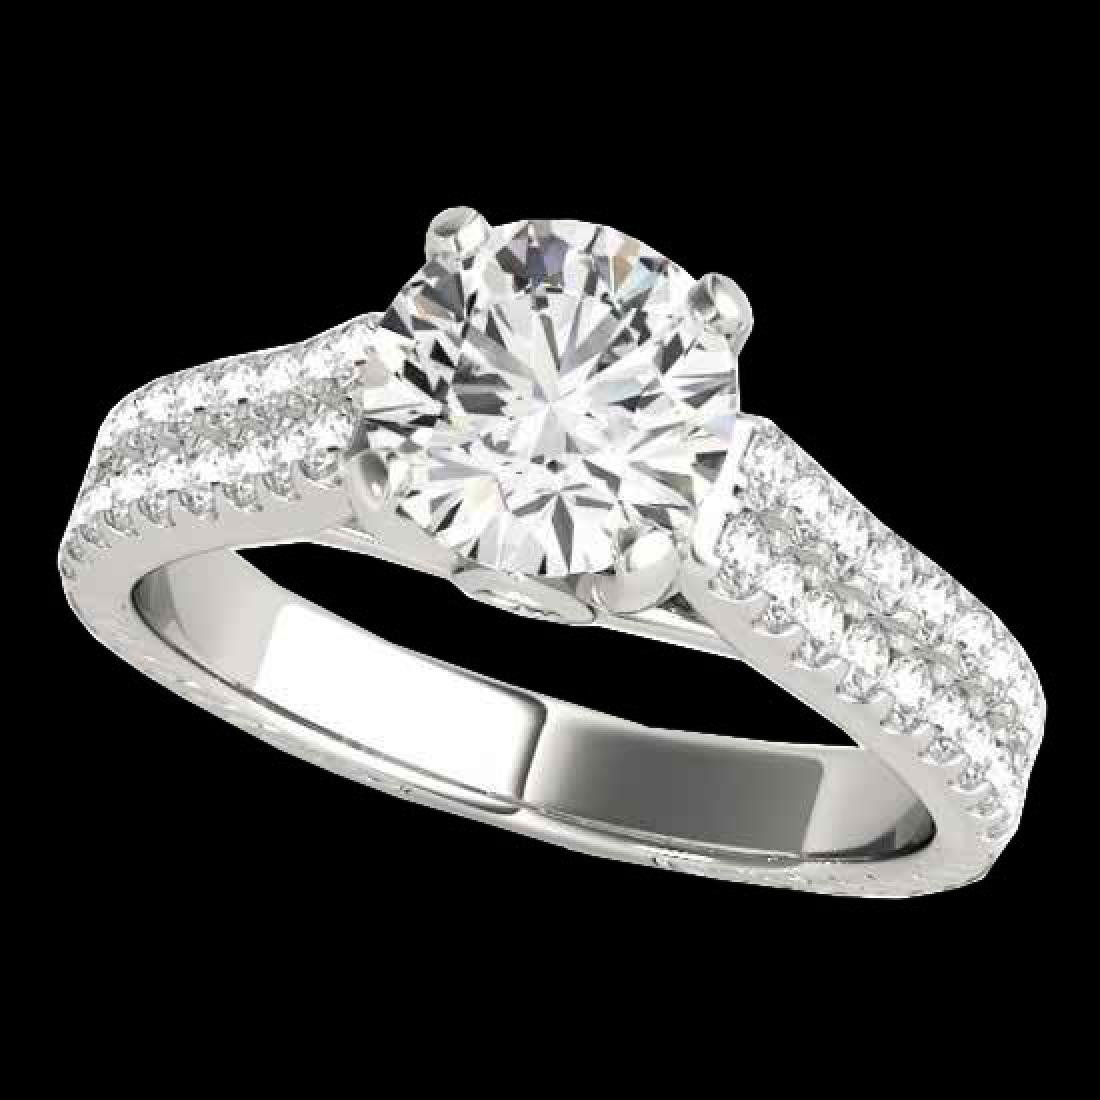 2.11 CTW H-SI/I Certified Diamond Pave Ring 10K White